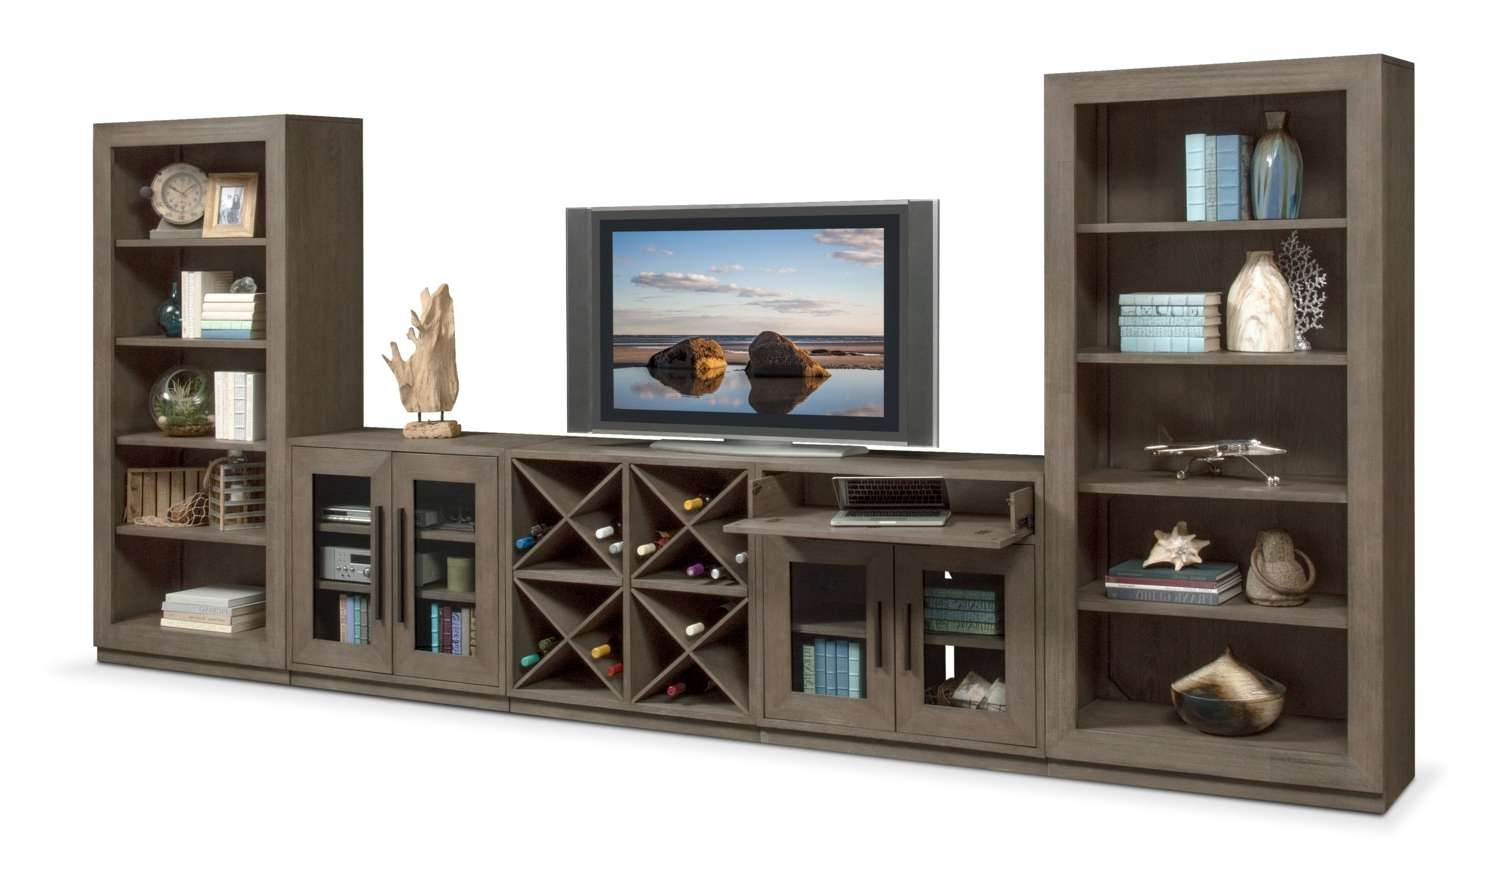 T V Stands & Media Centers | Value City Furniture And Mattresses Pertaining To Glass Fronted Tv Cabinets (View 14 of 20)